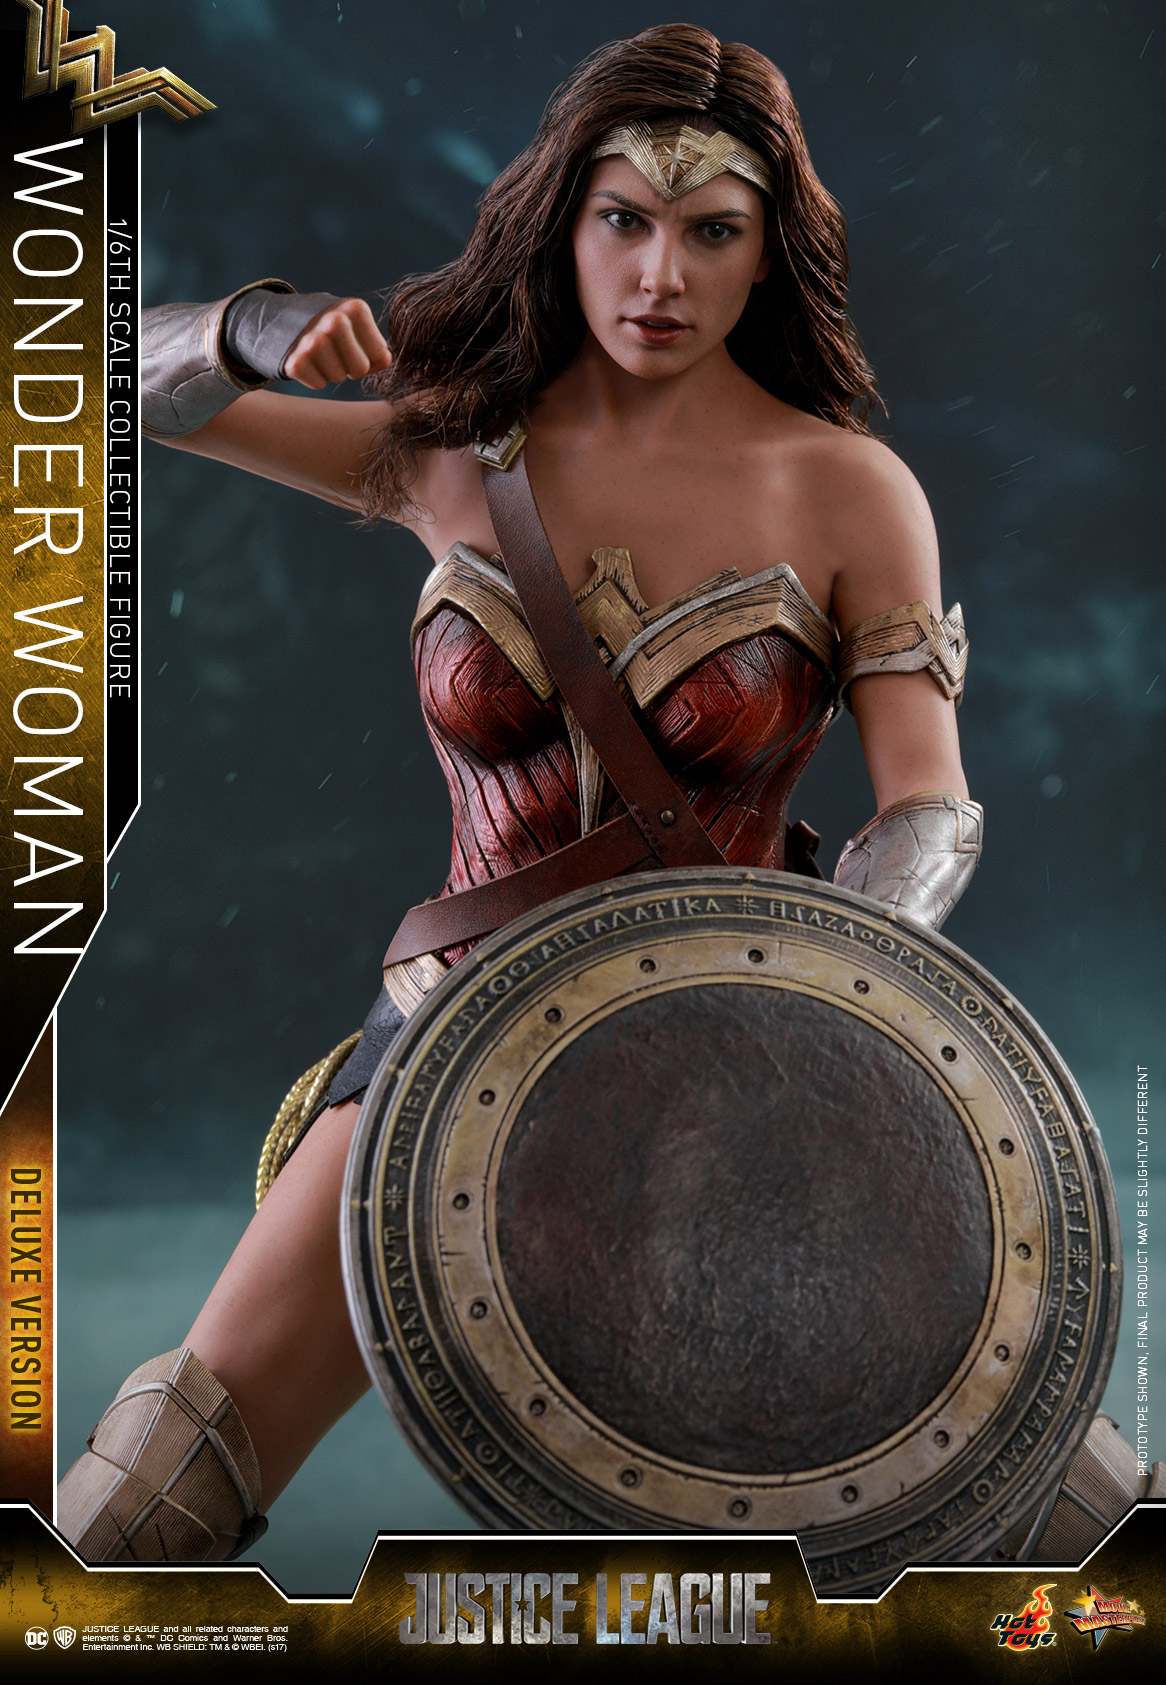 Hot-Toys-Justice-League-Wonder-Woman-collectible-figure-Deluxe_PR-10.jpg